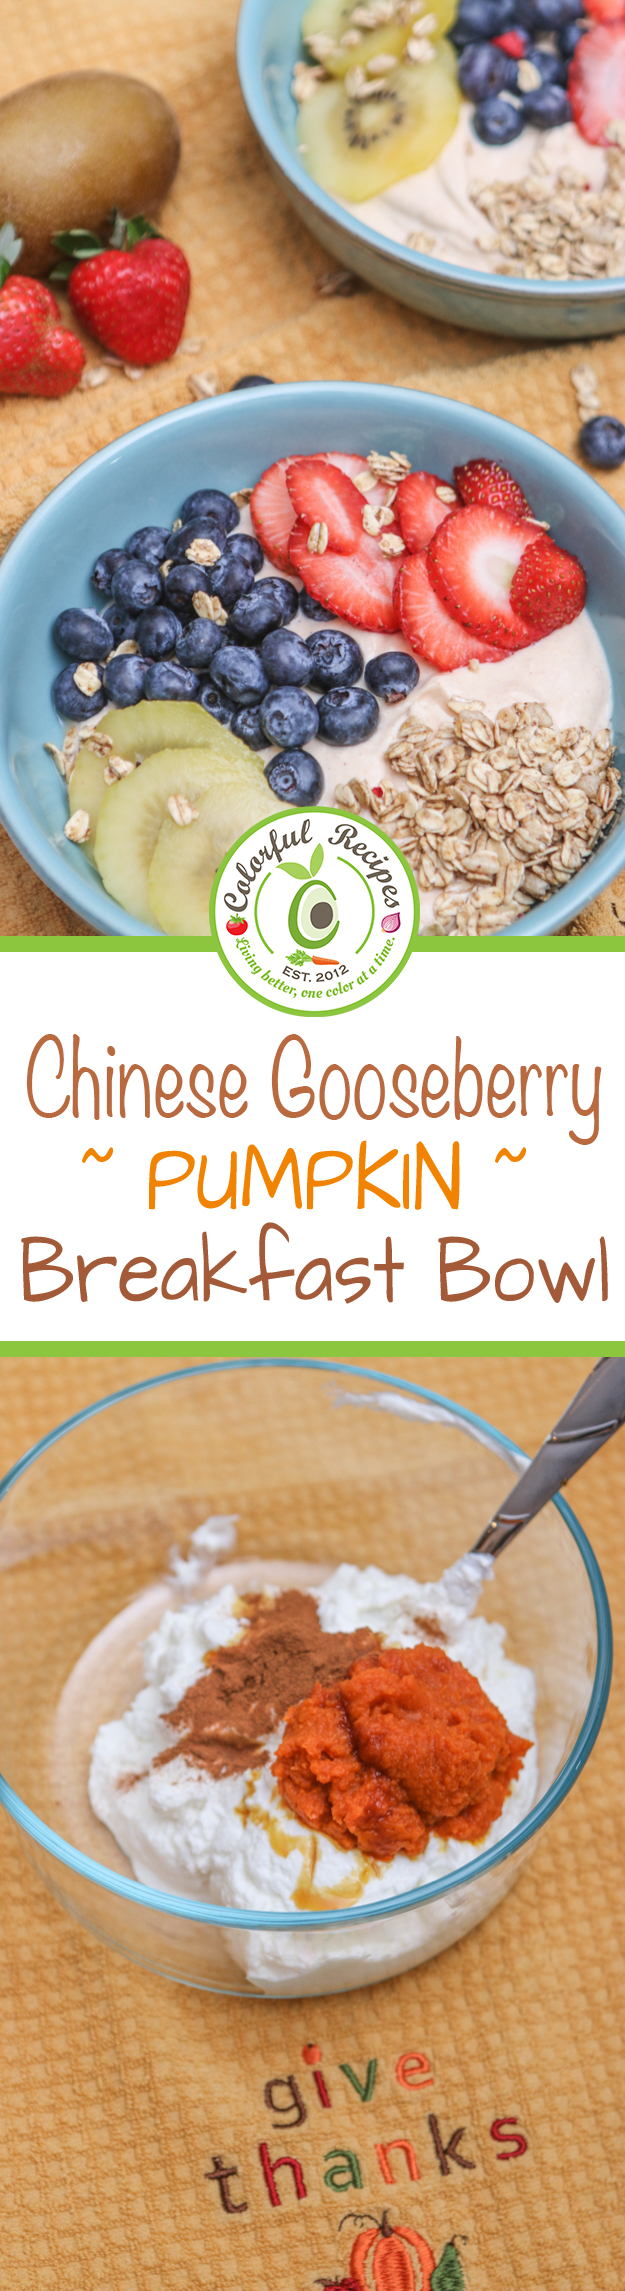 Chinese Gooseberry Pumpkin Breakfast Bowl